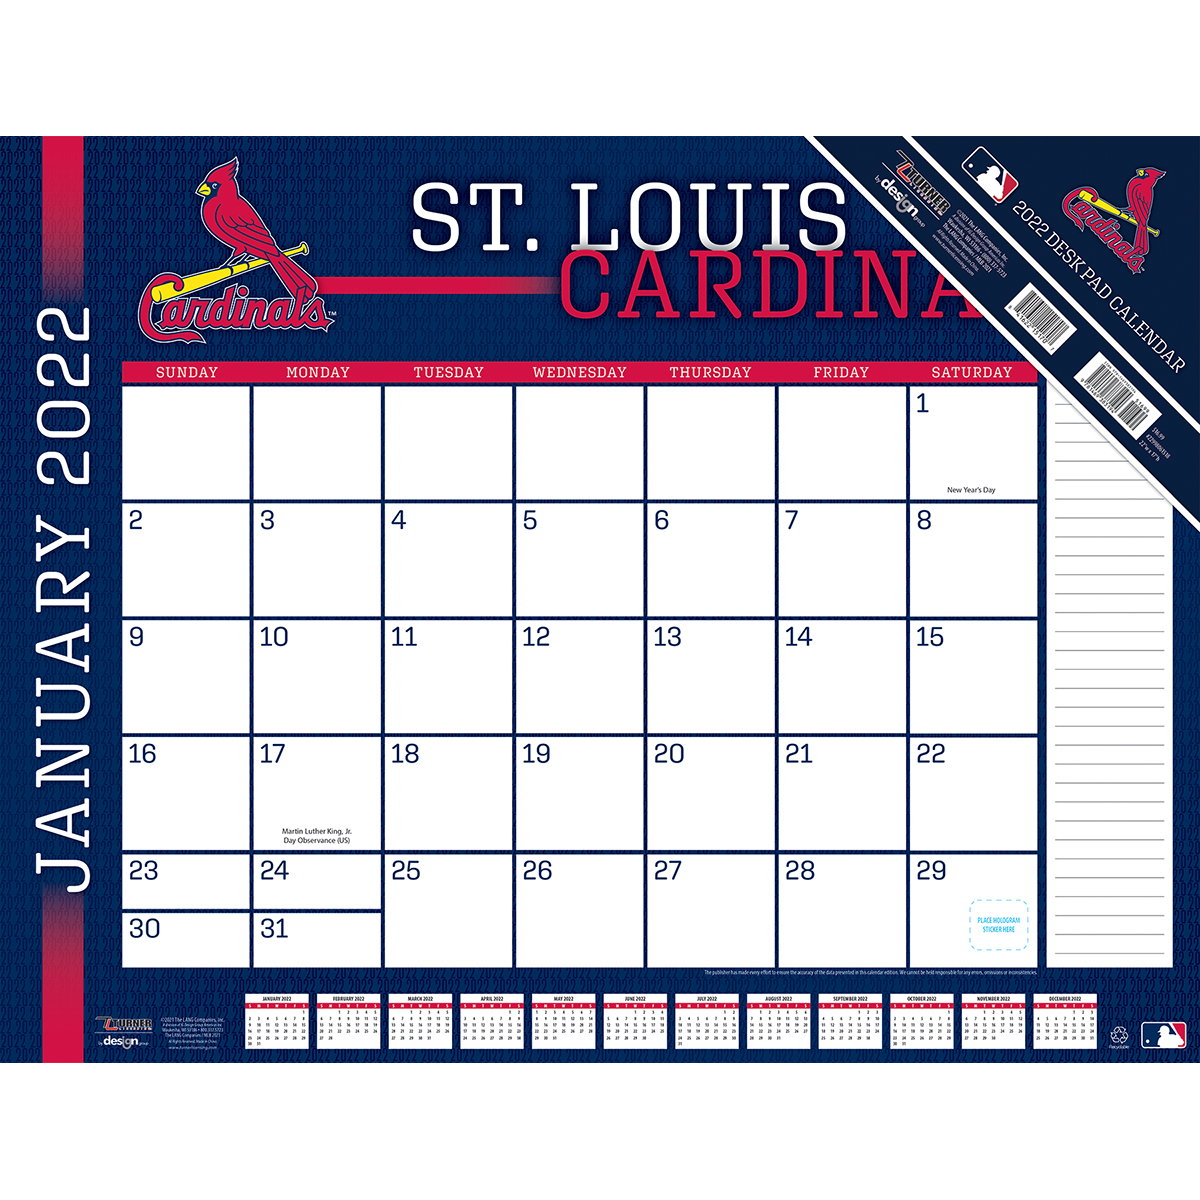 St. Louis Cardinals 2020 MLB 22 x 17 Desk Calendar